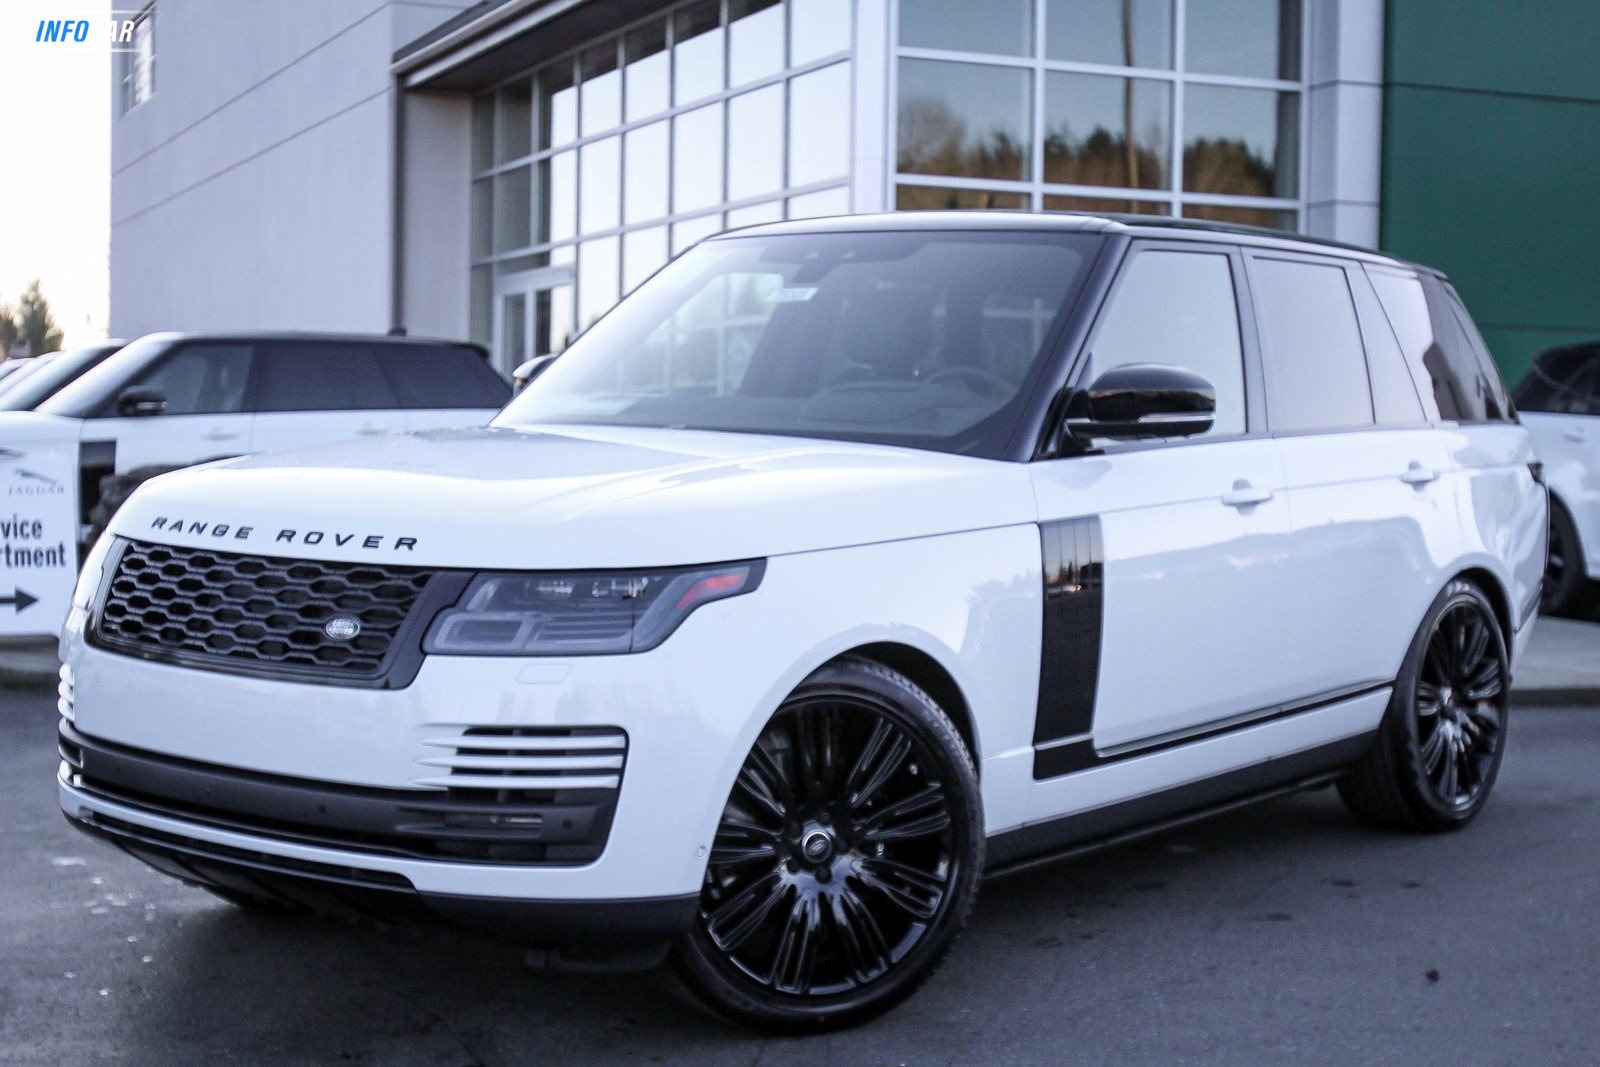 2020 Land Rover Range Rover P25 V8 HSE - INFOCAR - Toronto's Most Comprehensive New and Used Auto Trading Platform